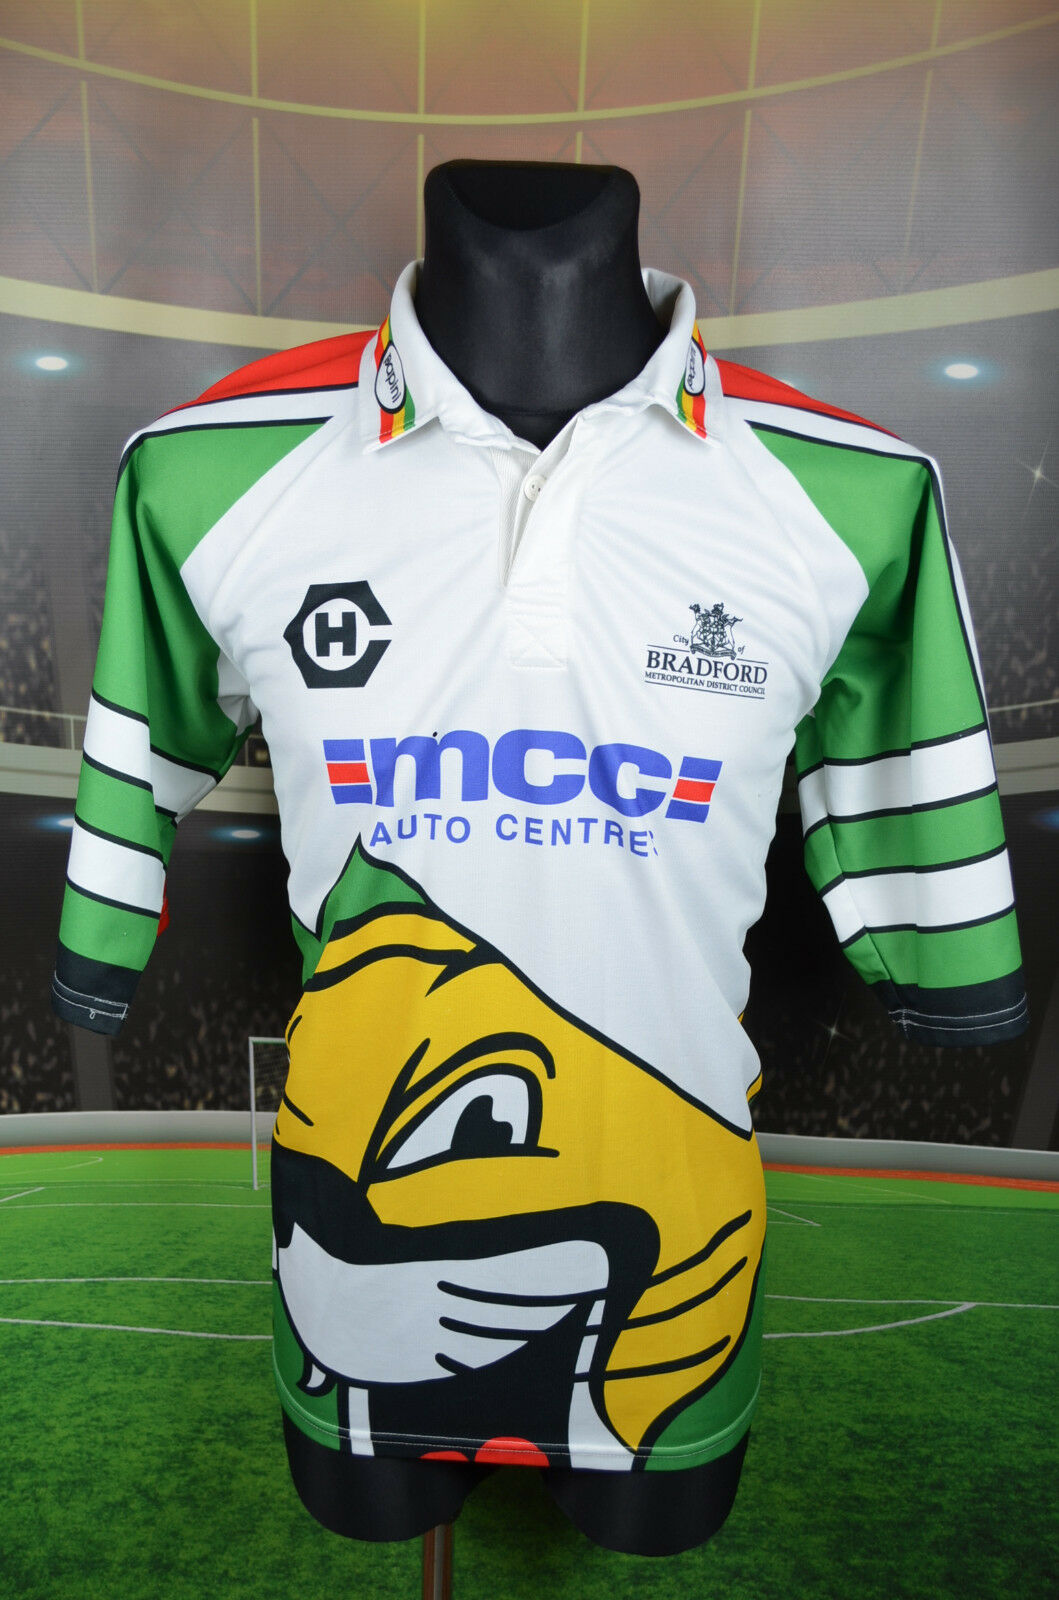 BRADFORD COUNCIL PAPINI RUGBY LEAGUE SHIRT (L) JERSEY TOP TRIKOT CITY OF COUGARS